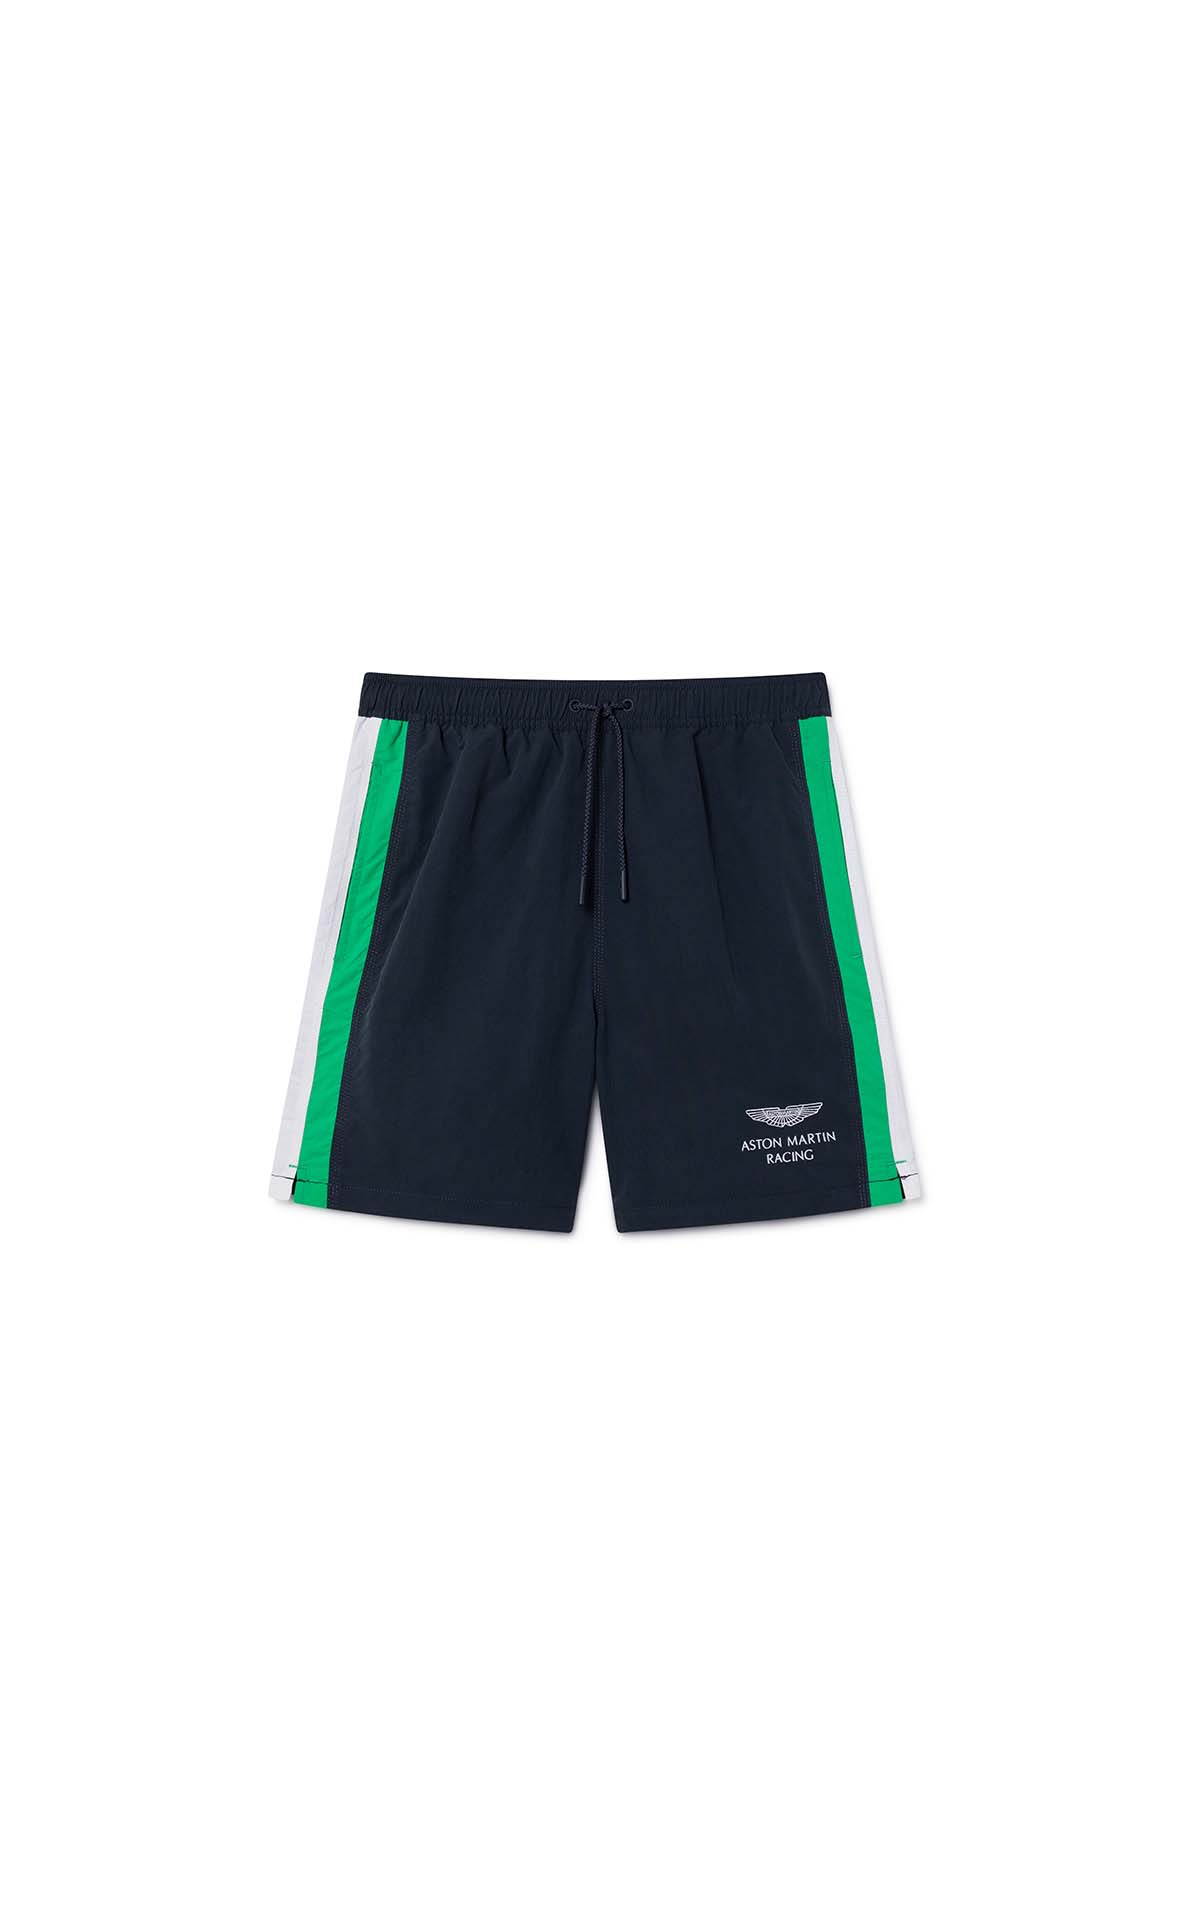 Hackett London swimshorts at The Bicester Village Shopping Collection